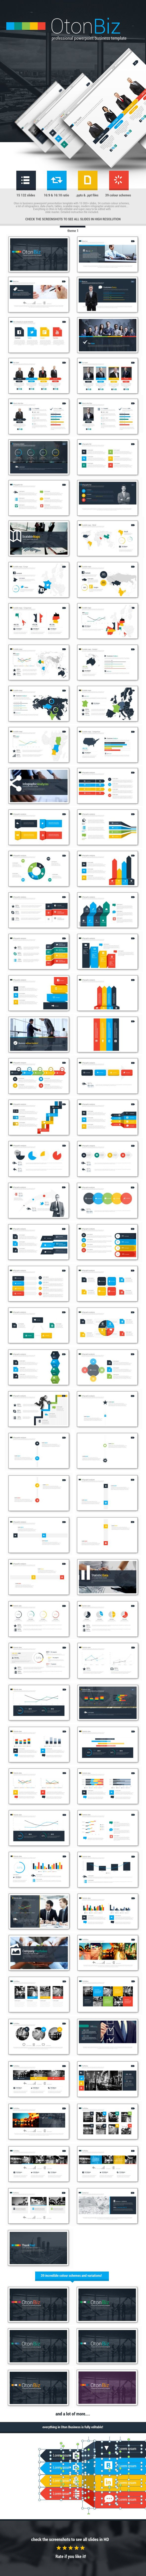 Oton Business Powerpoint Presentation Template #powerpoint #powerpointtemplate #presentation Download: http://graphicriver.net/item/oton-business-powerpoint-presentation-template/11974968?ref=ksioks